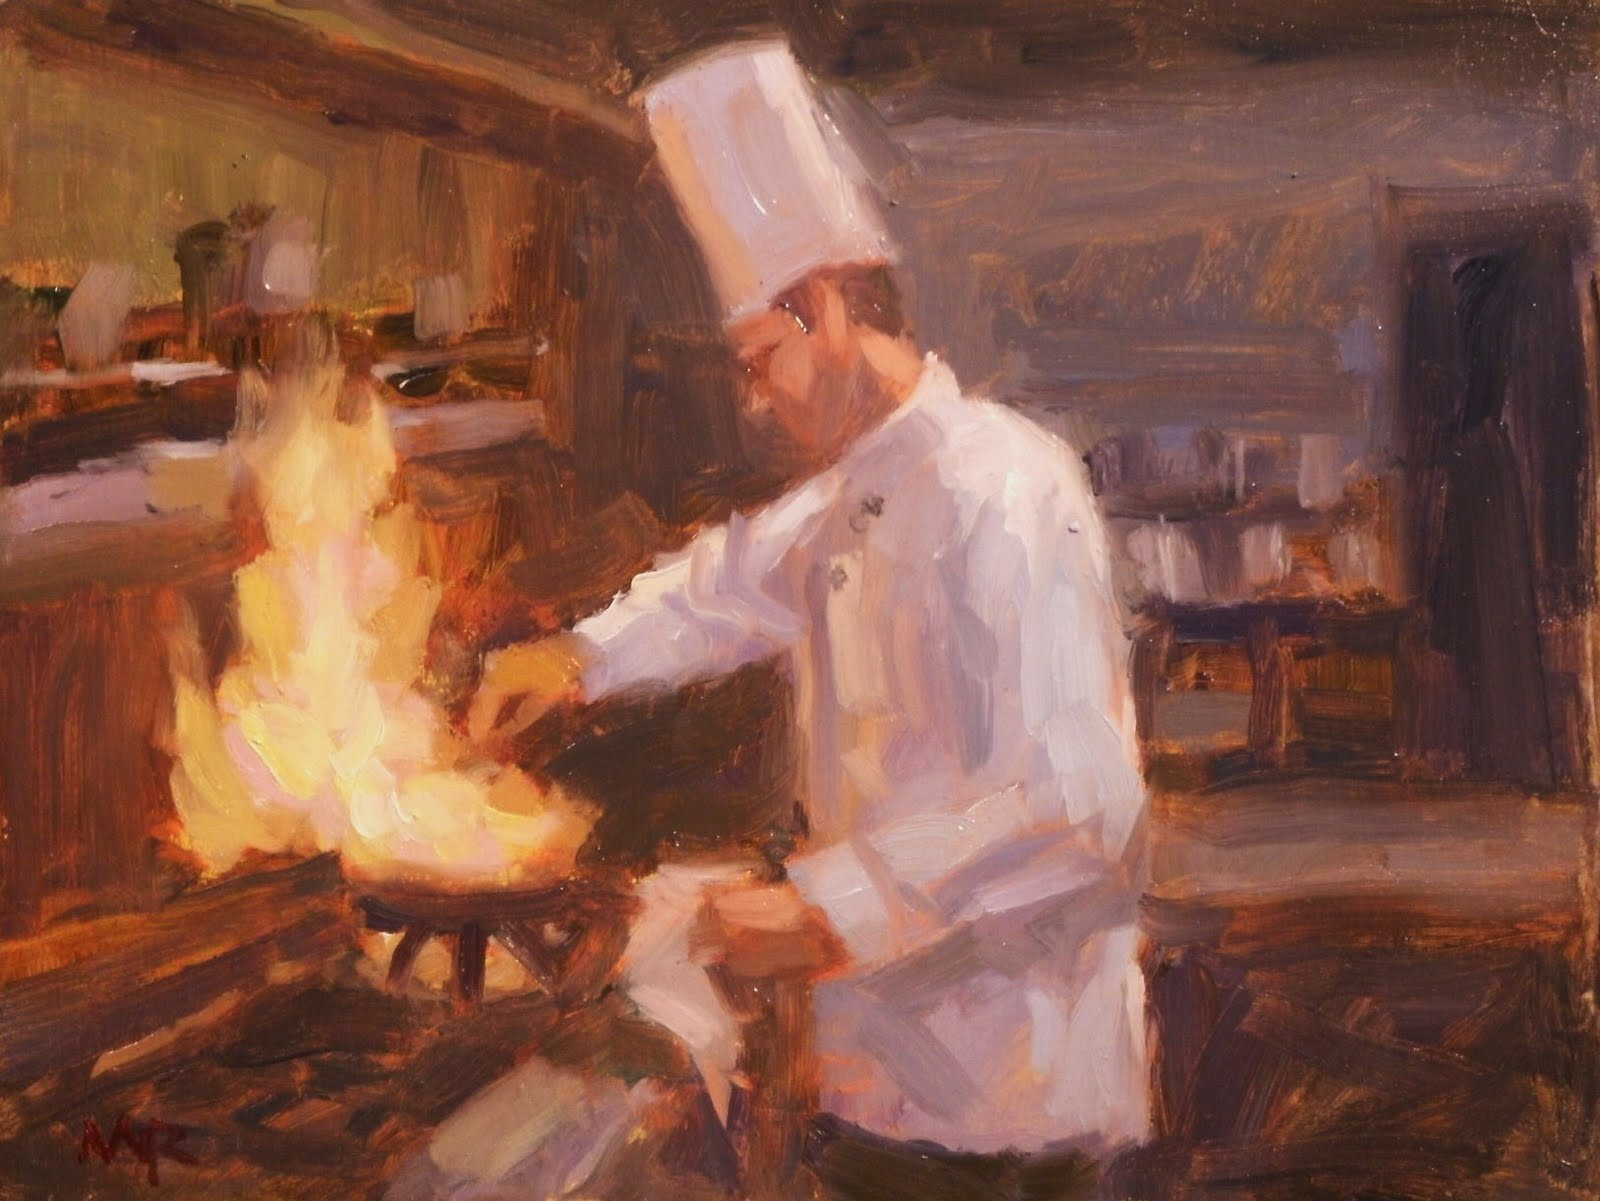 Mike Rooney Studios- Painting a Day: Chef Series